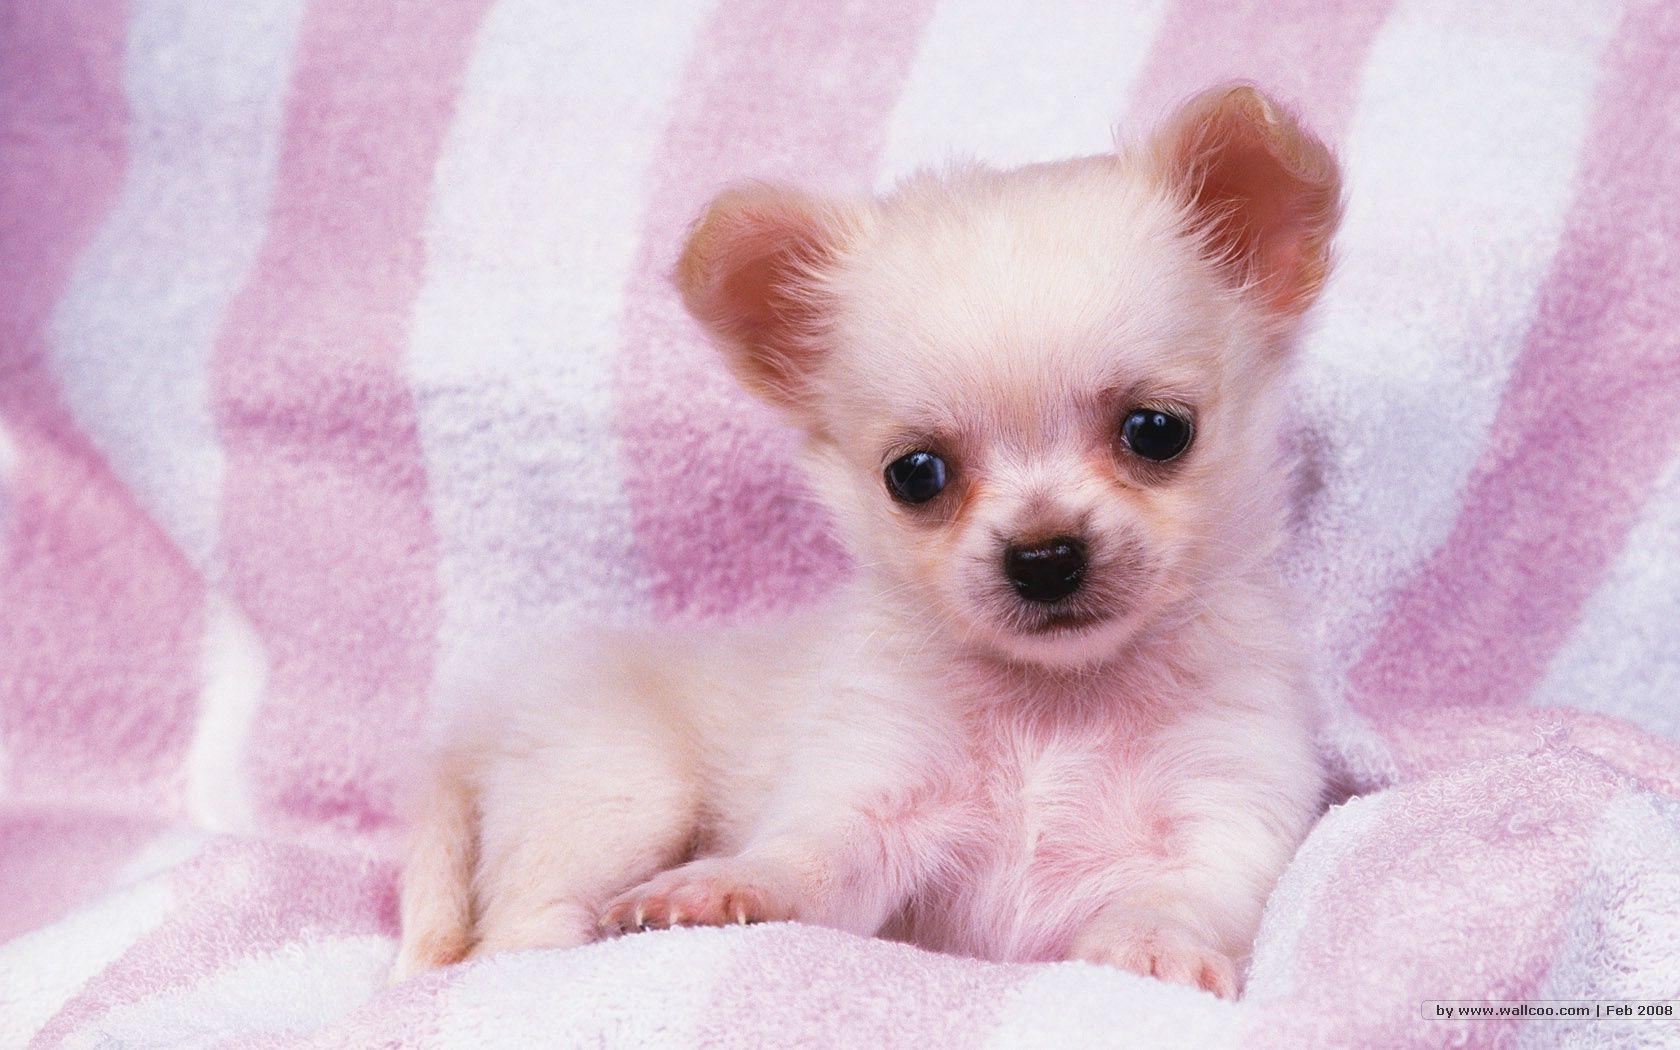 41 units of Puppy Wallpapers